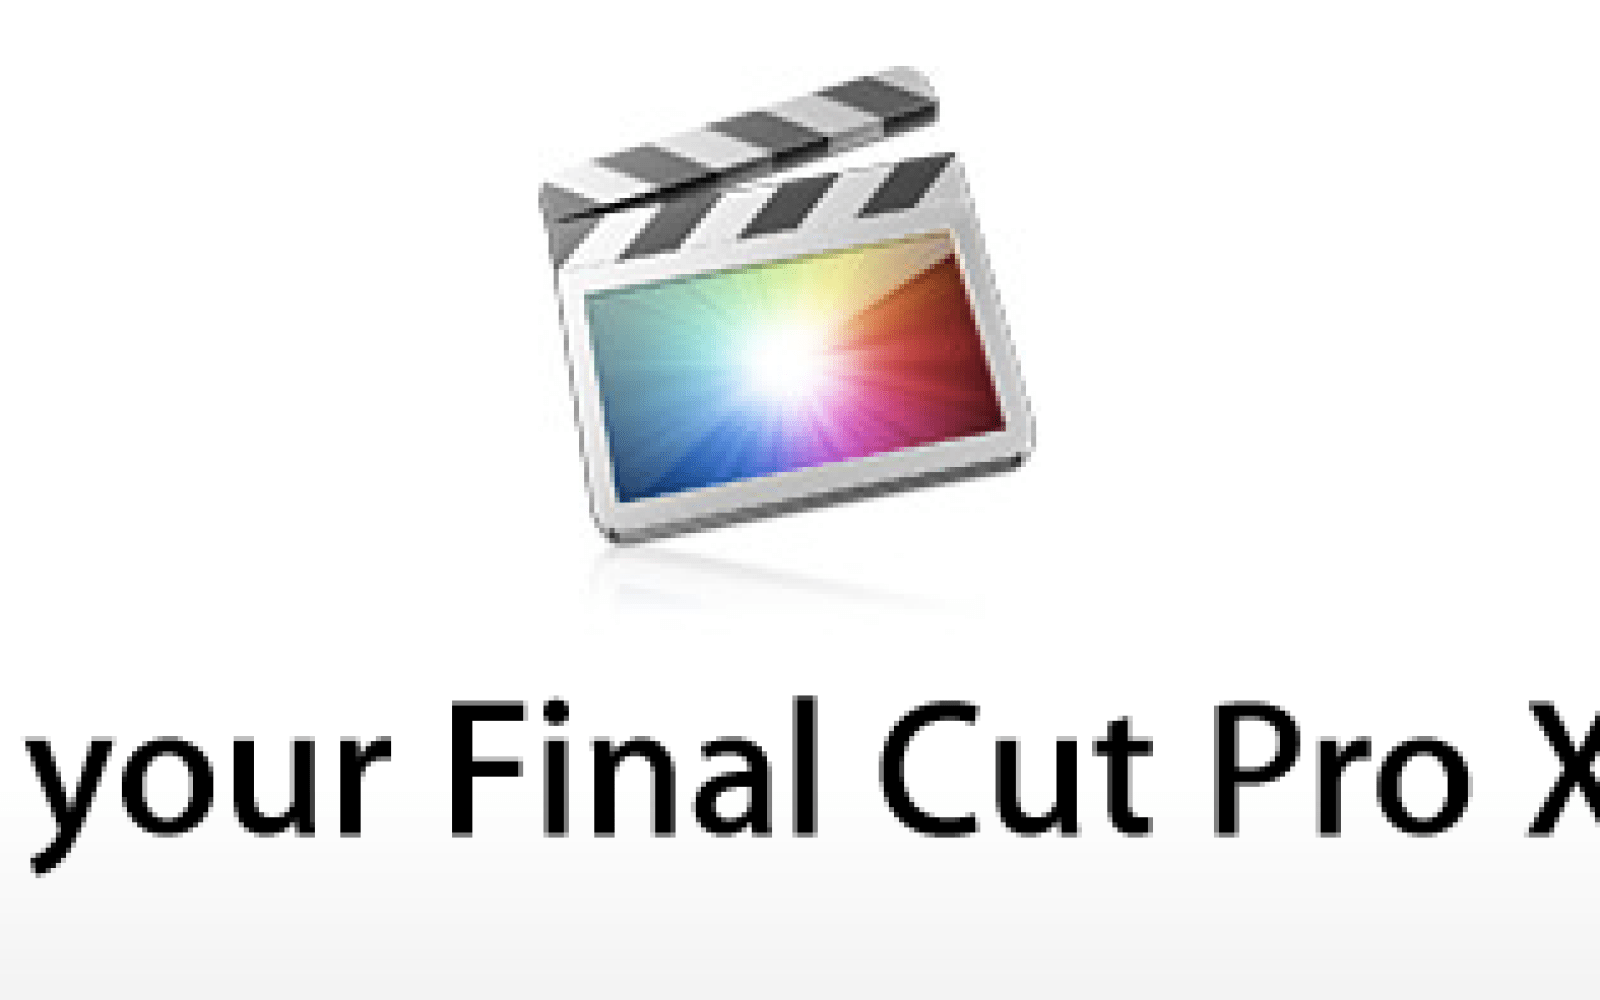 Apple officially responds to Final Cut Pro X complaints with new FAQ